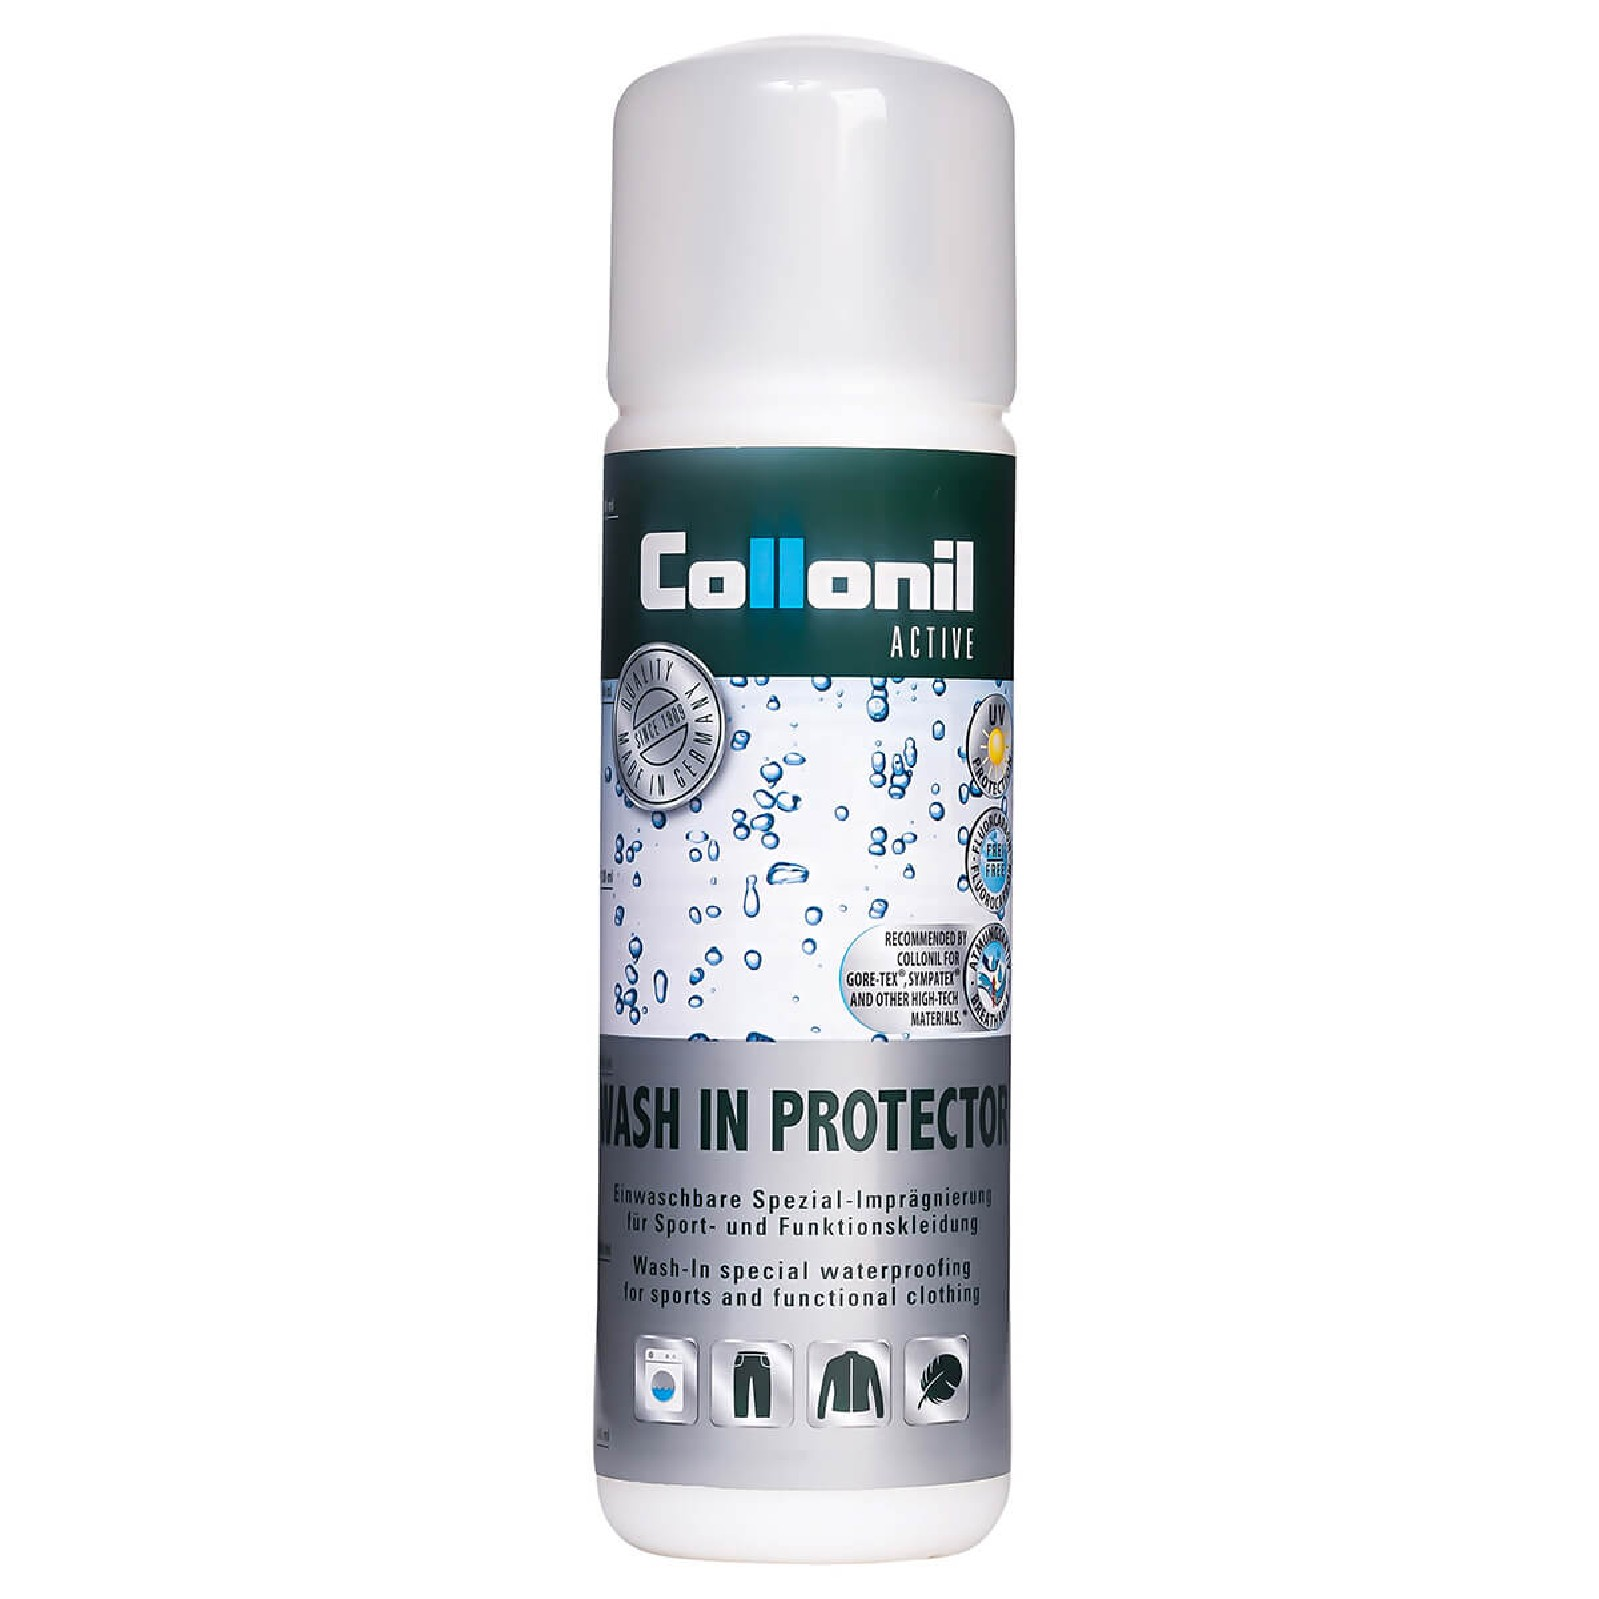 Colloni Activ Wash in Protector